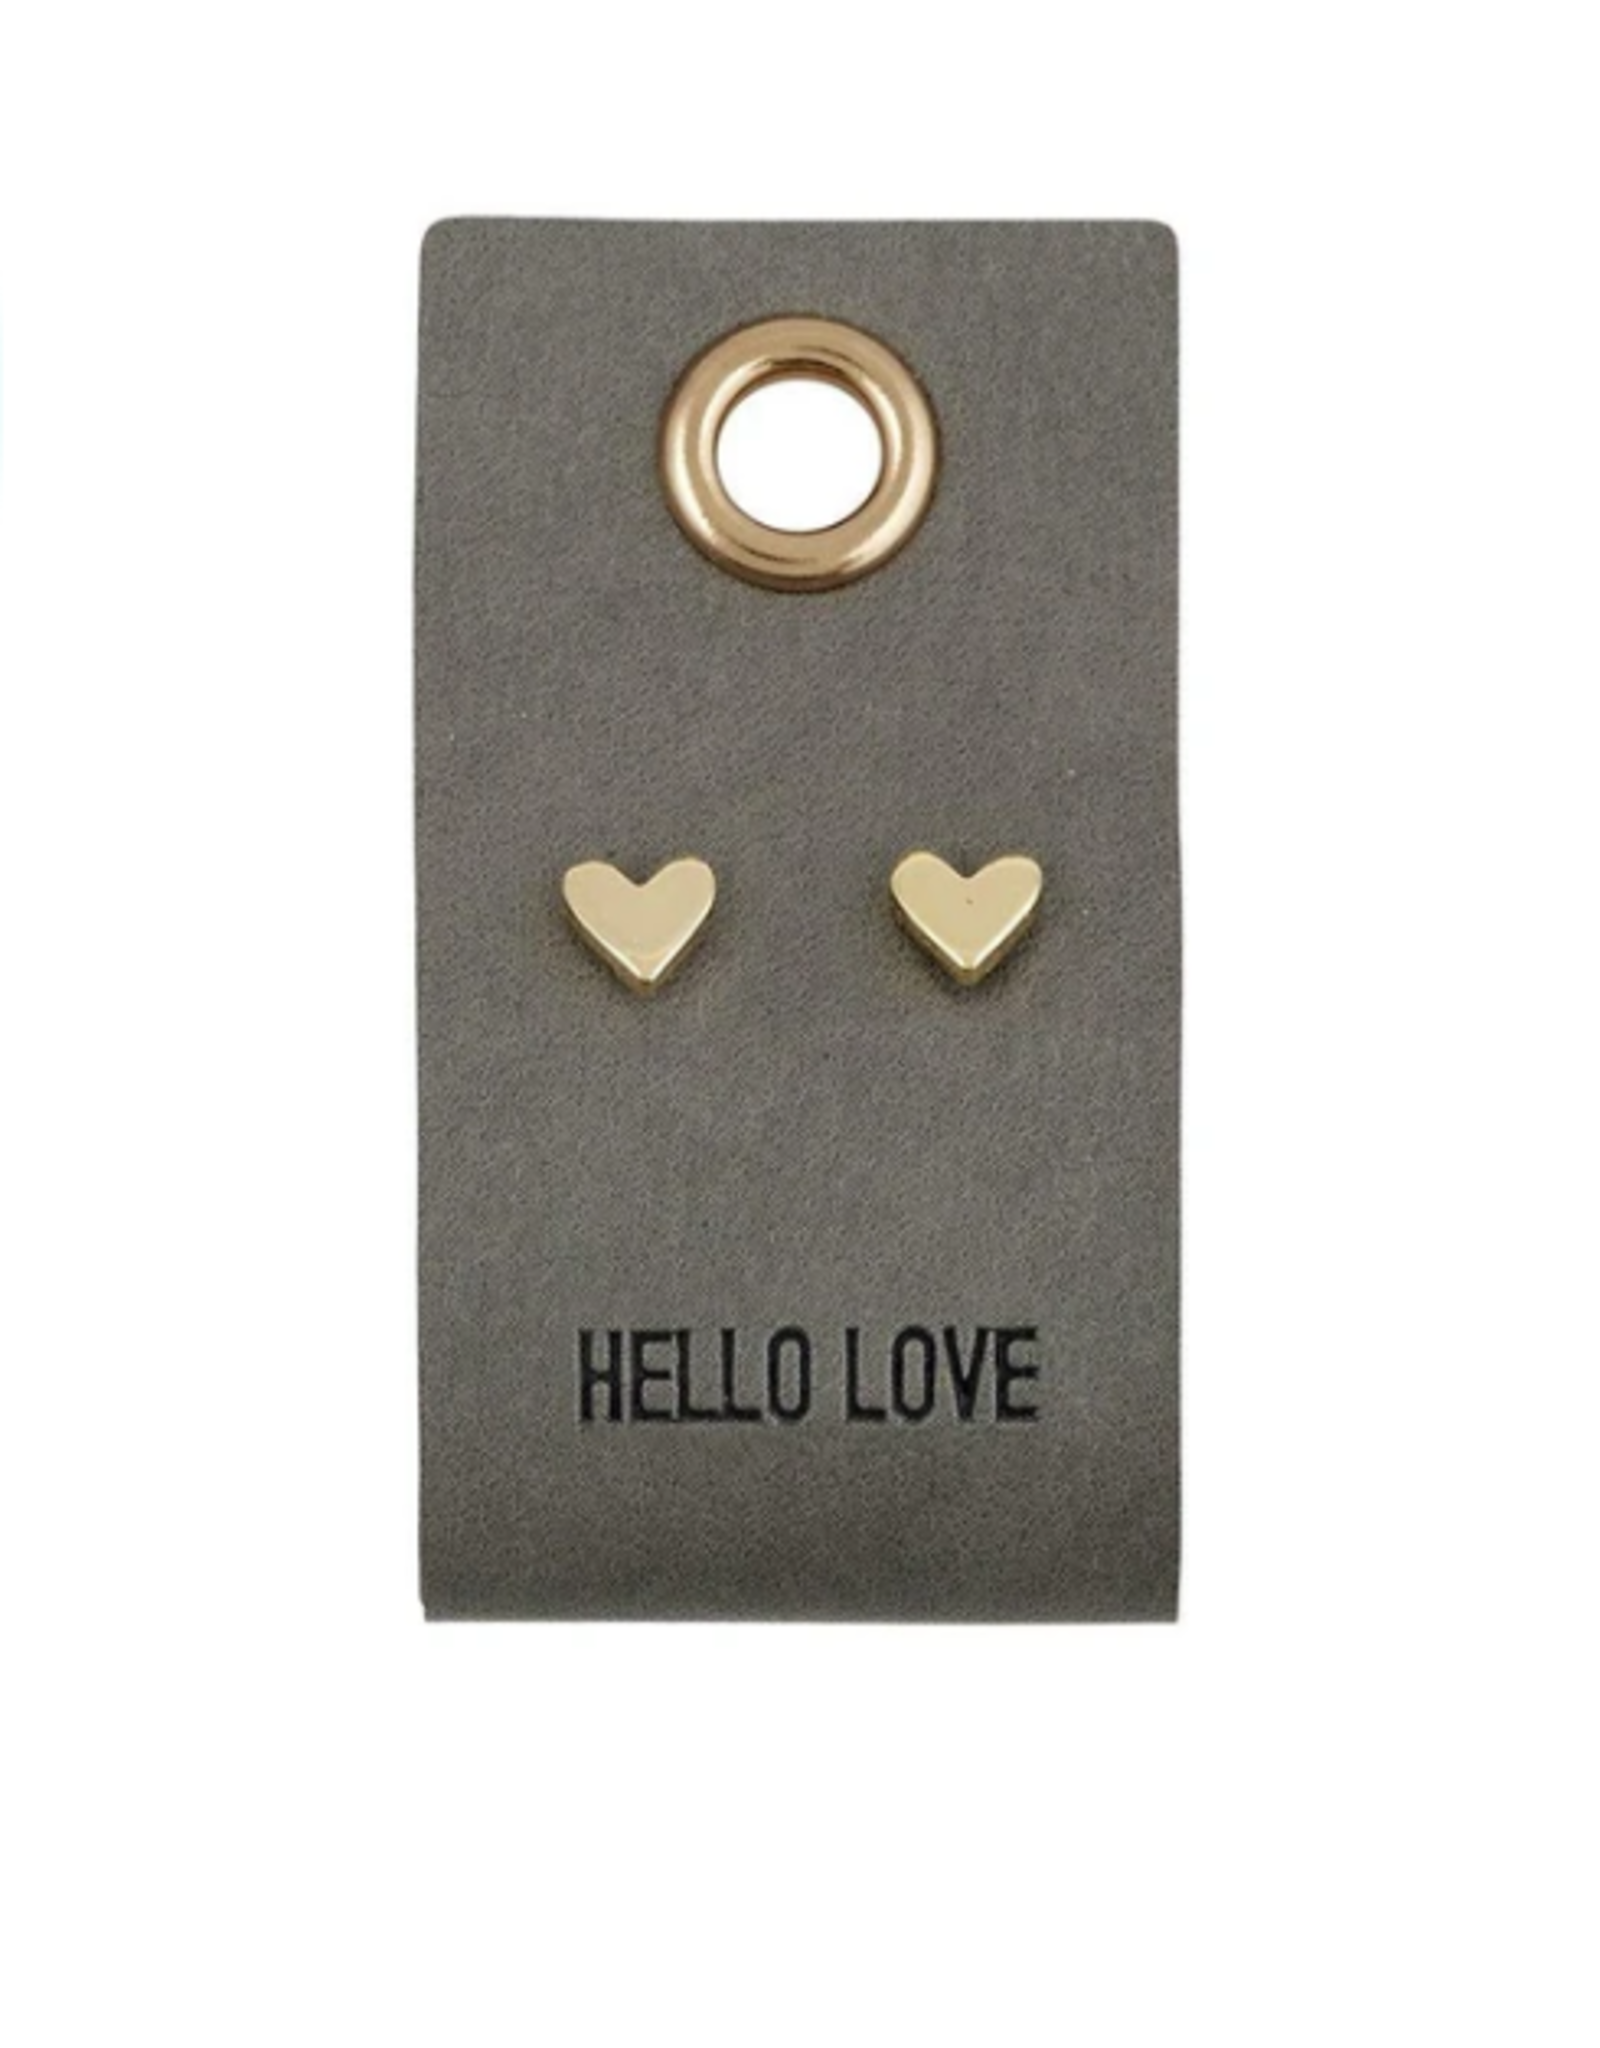 Relish Leather Tag with Earrings